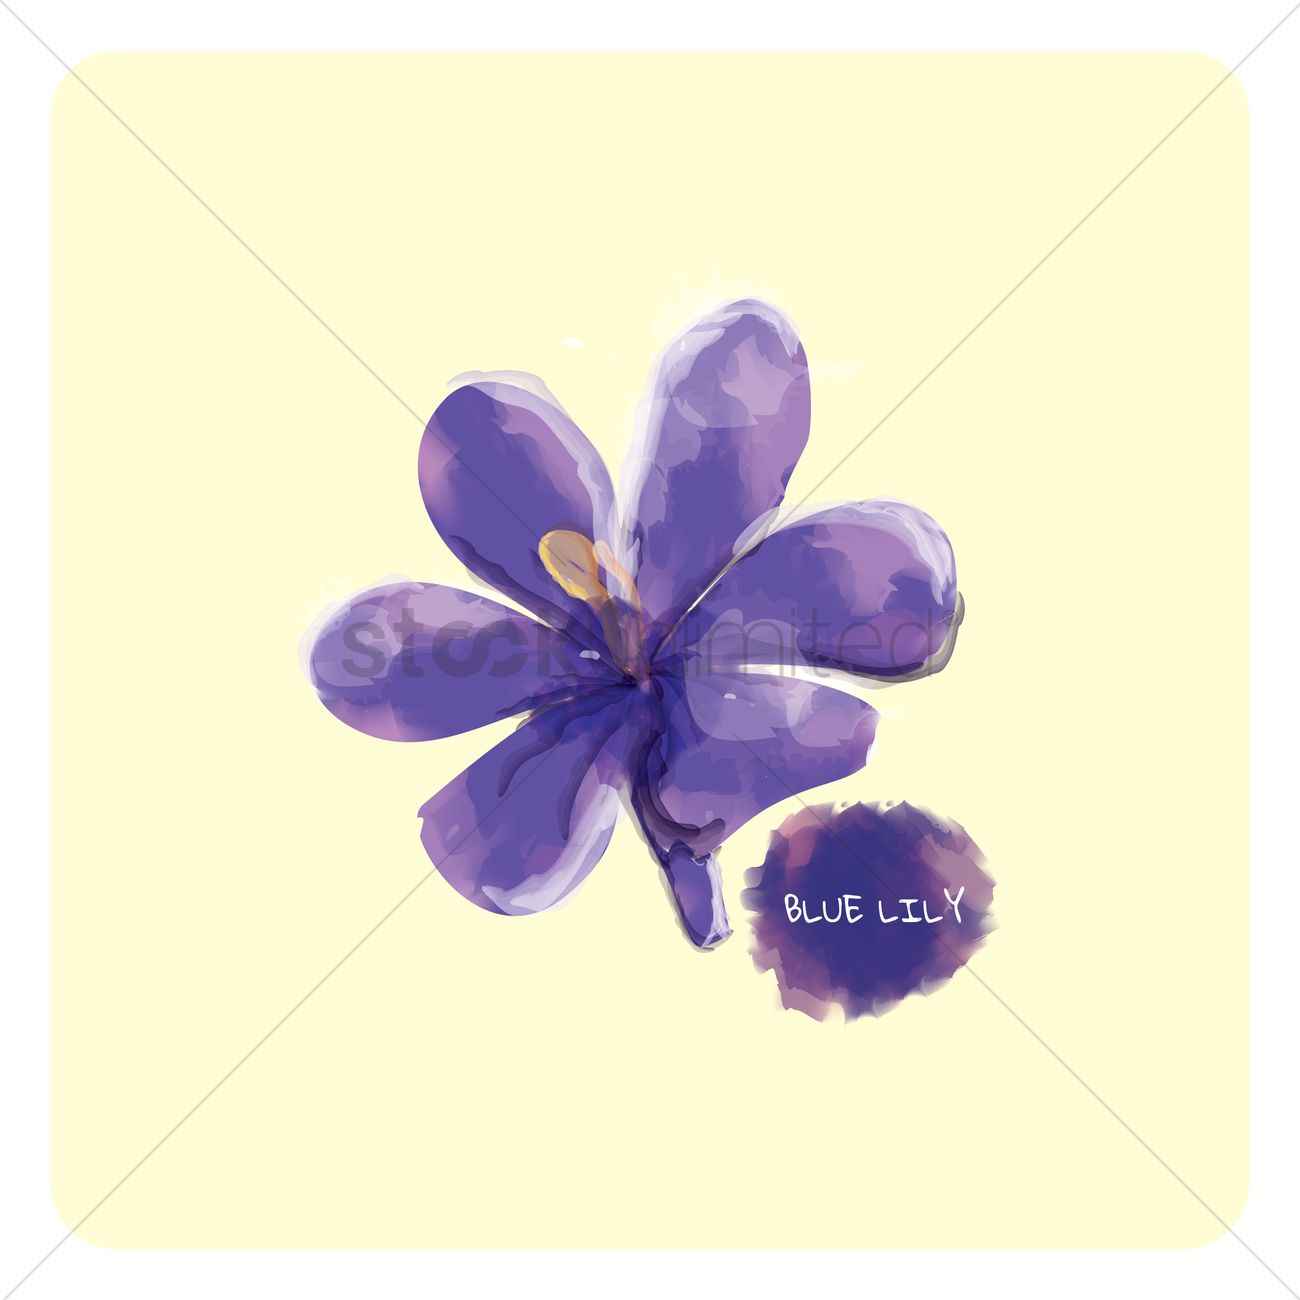 Blue lily vector image 1610407 stockunlimited blue lily vector graphic izmirmasajfo